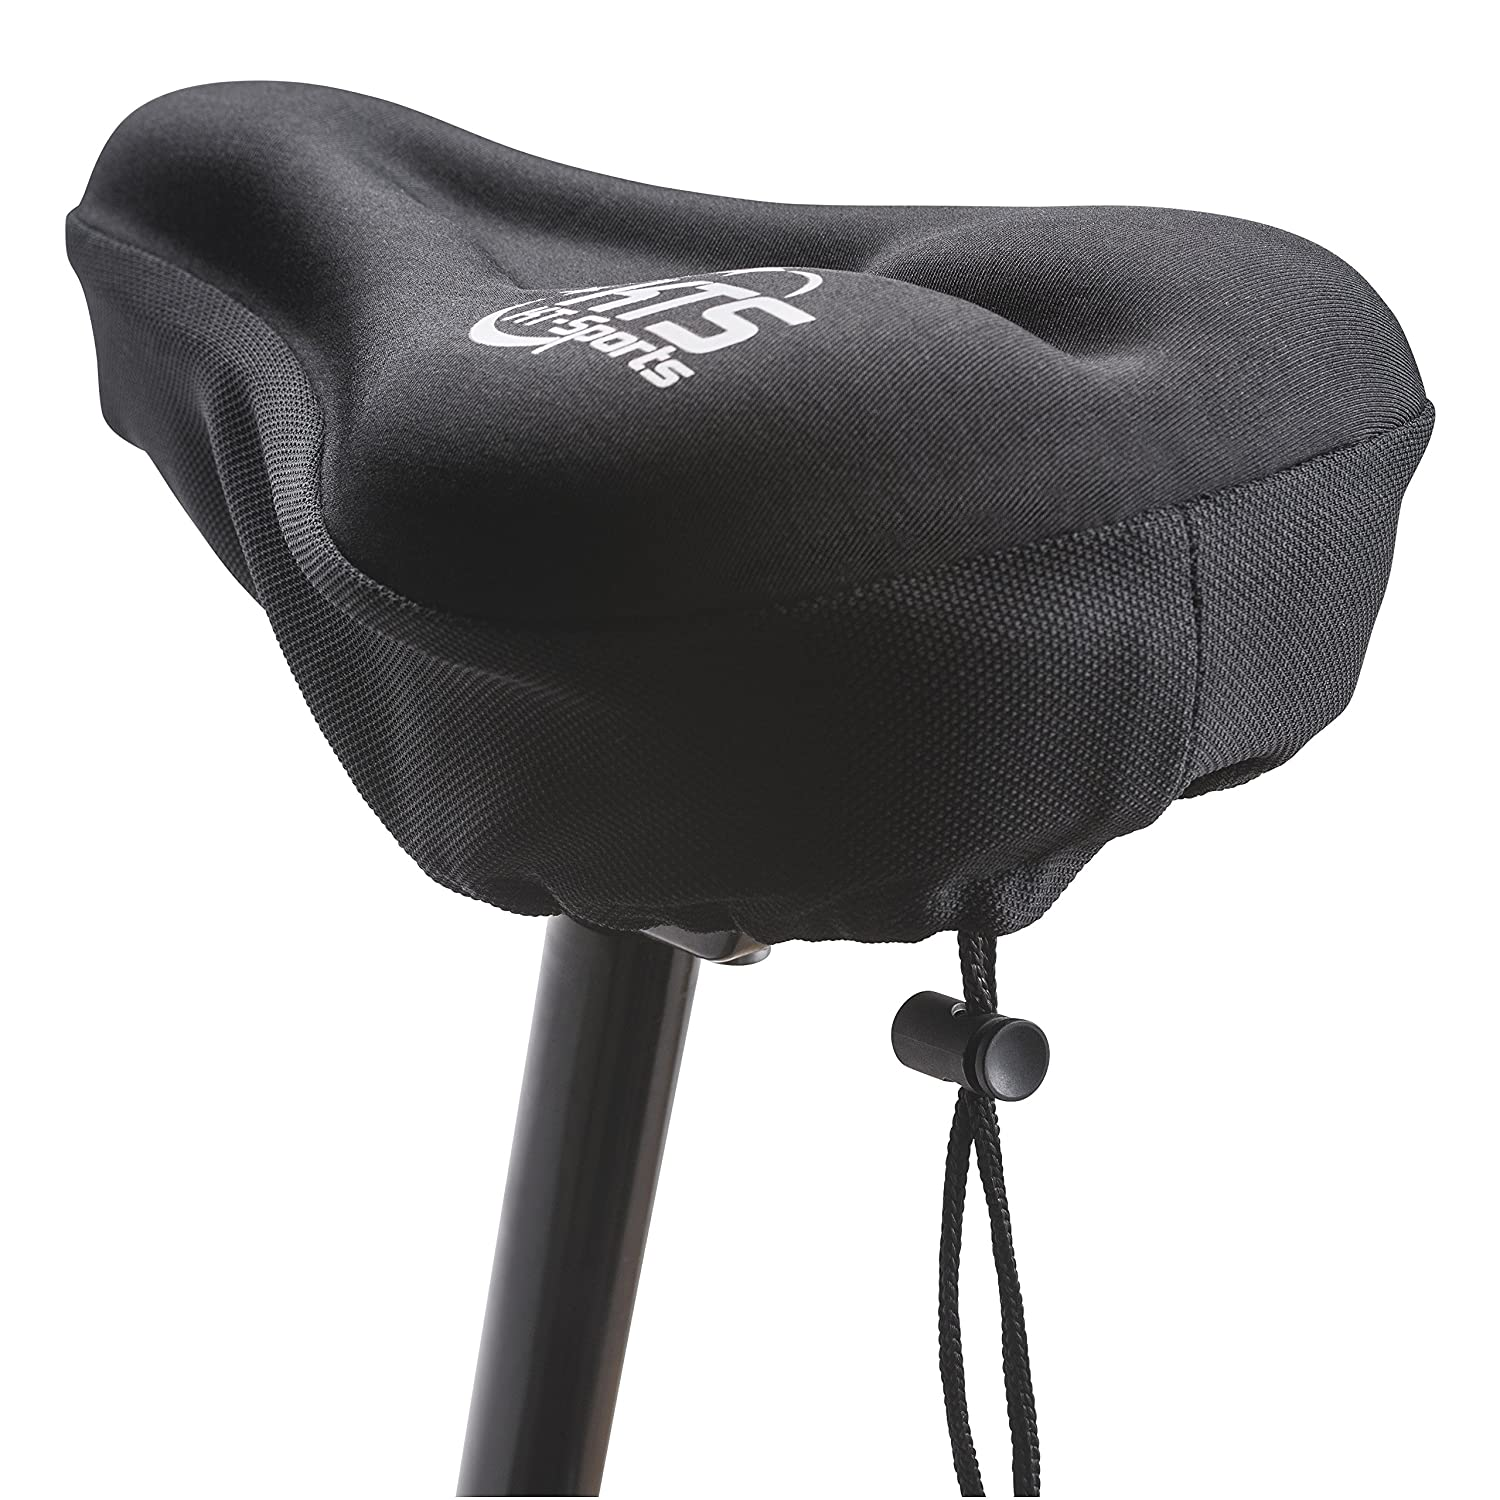 with road comforter cushion bicycle most seat pin warning west wide biking comfortable taillight bike saddle